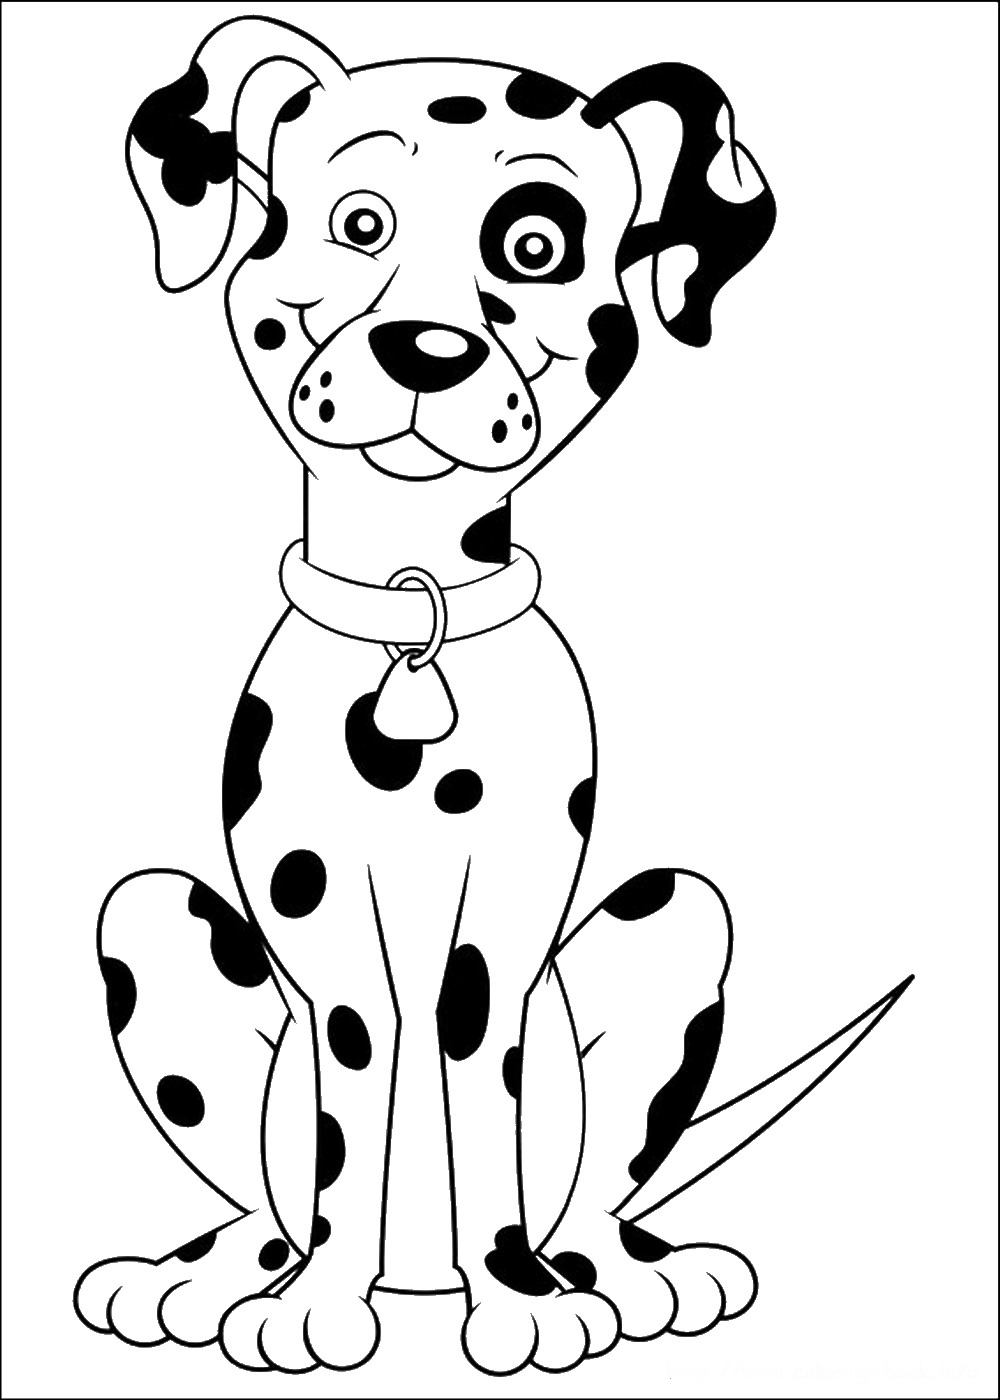 fireman sam coloring pages best coloring pages site pippi in the hat coloring pages pages sam fireman coloring